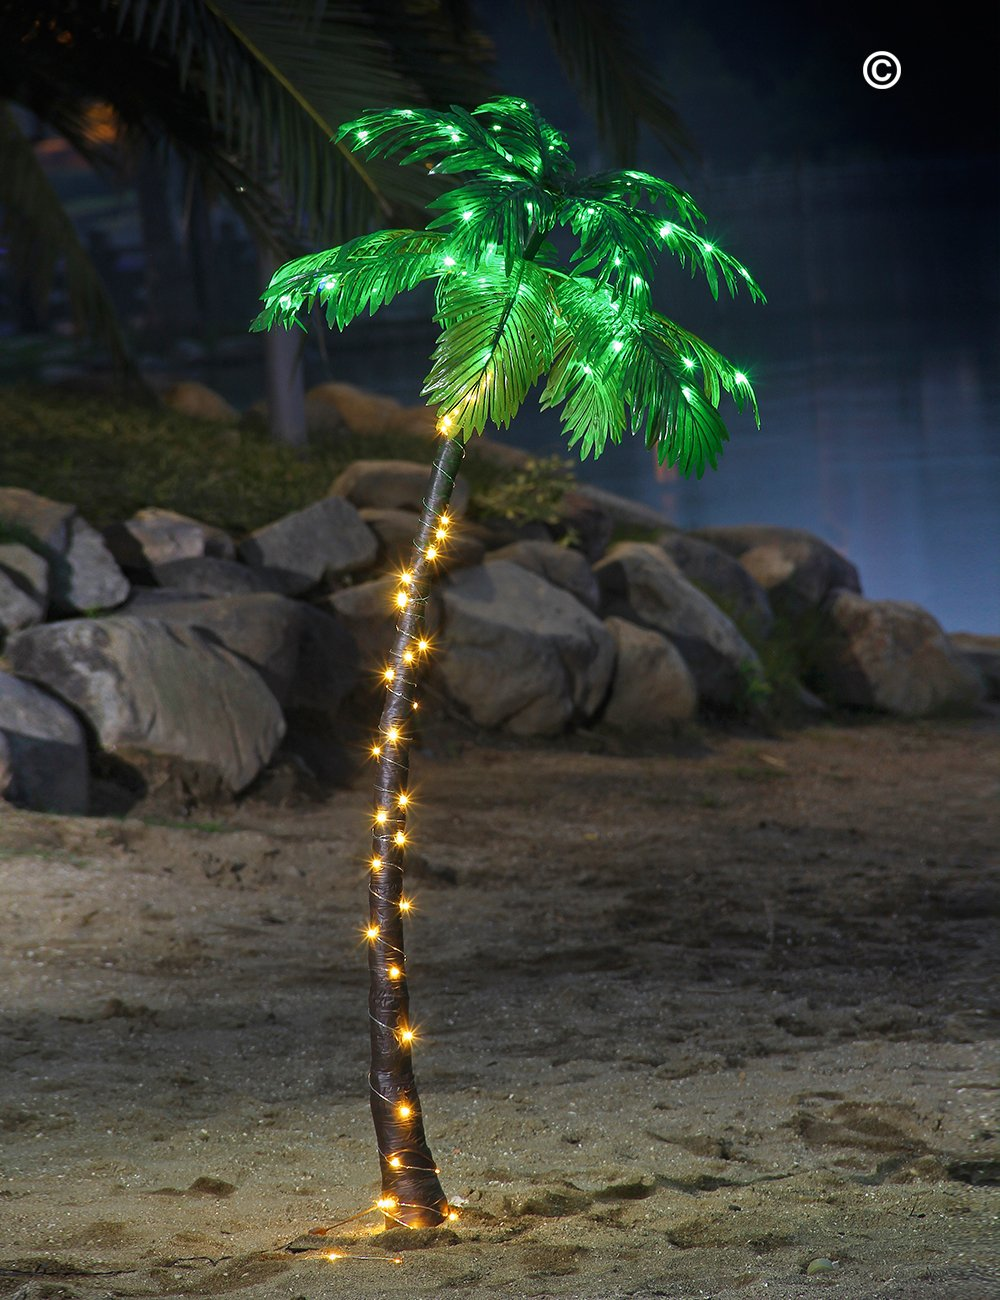 amazoncom lightshare 5ft palm tree 56led lights decoration for home party christmas nativity pool home kitchen - Christmas Palm Tree